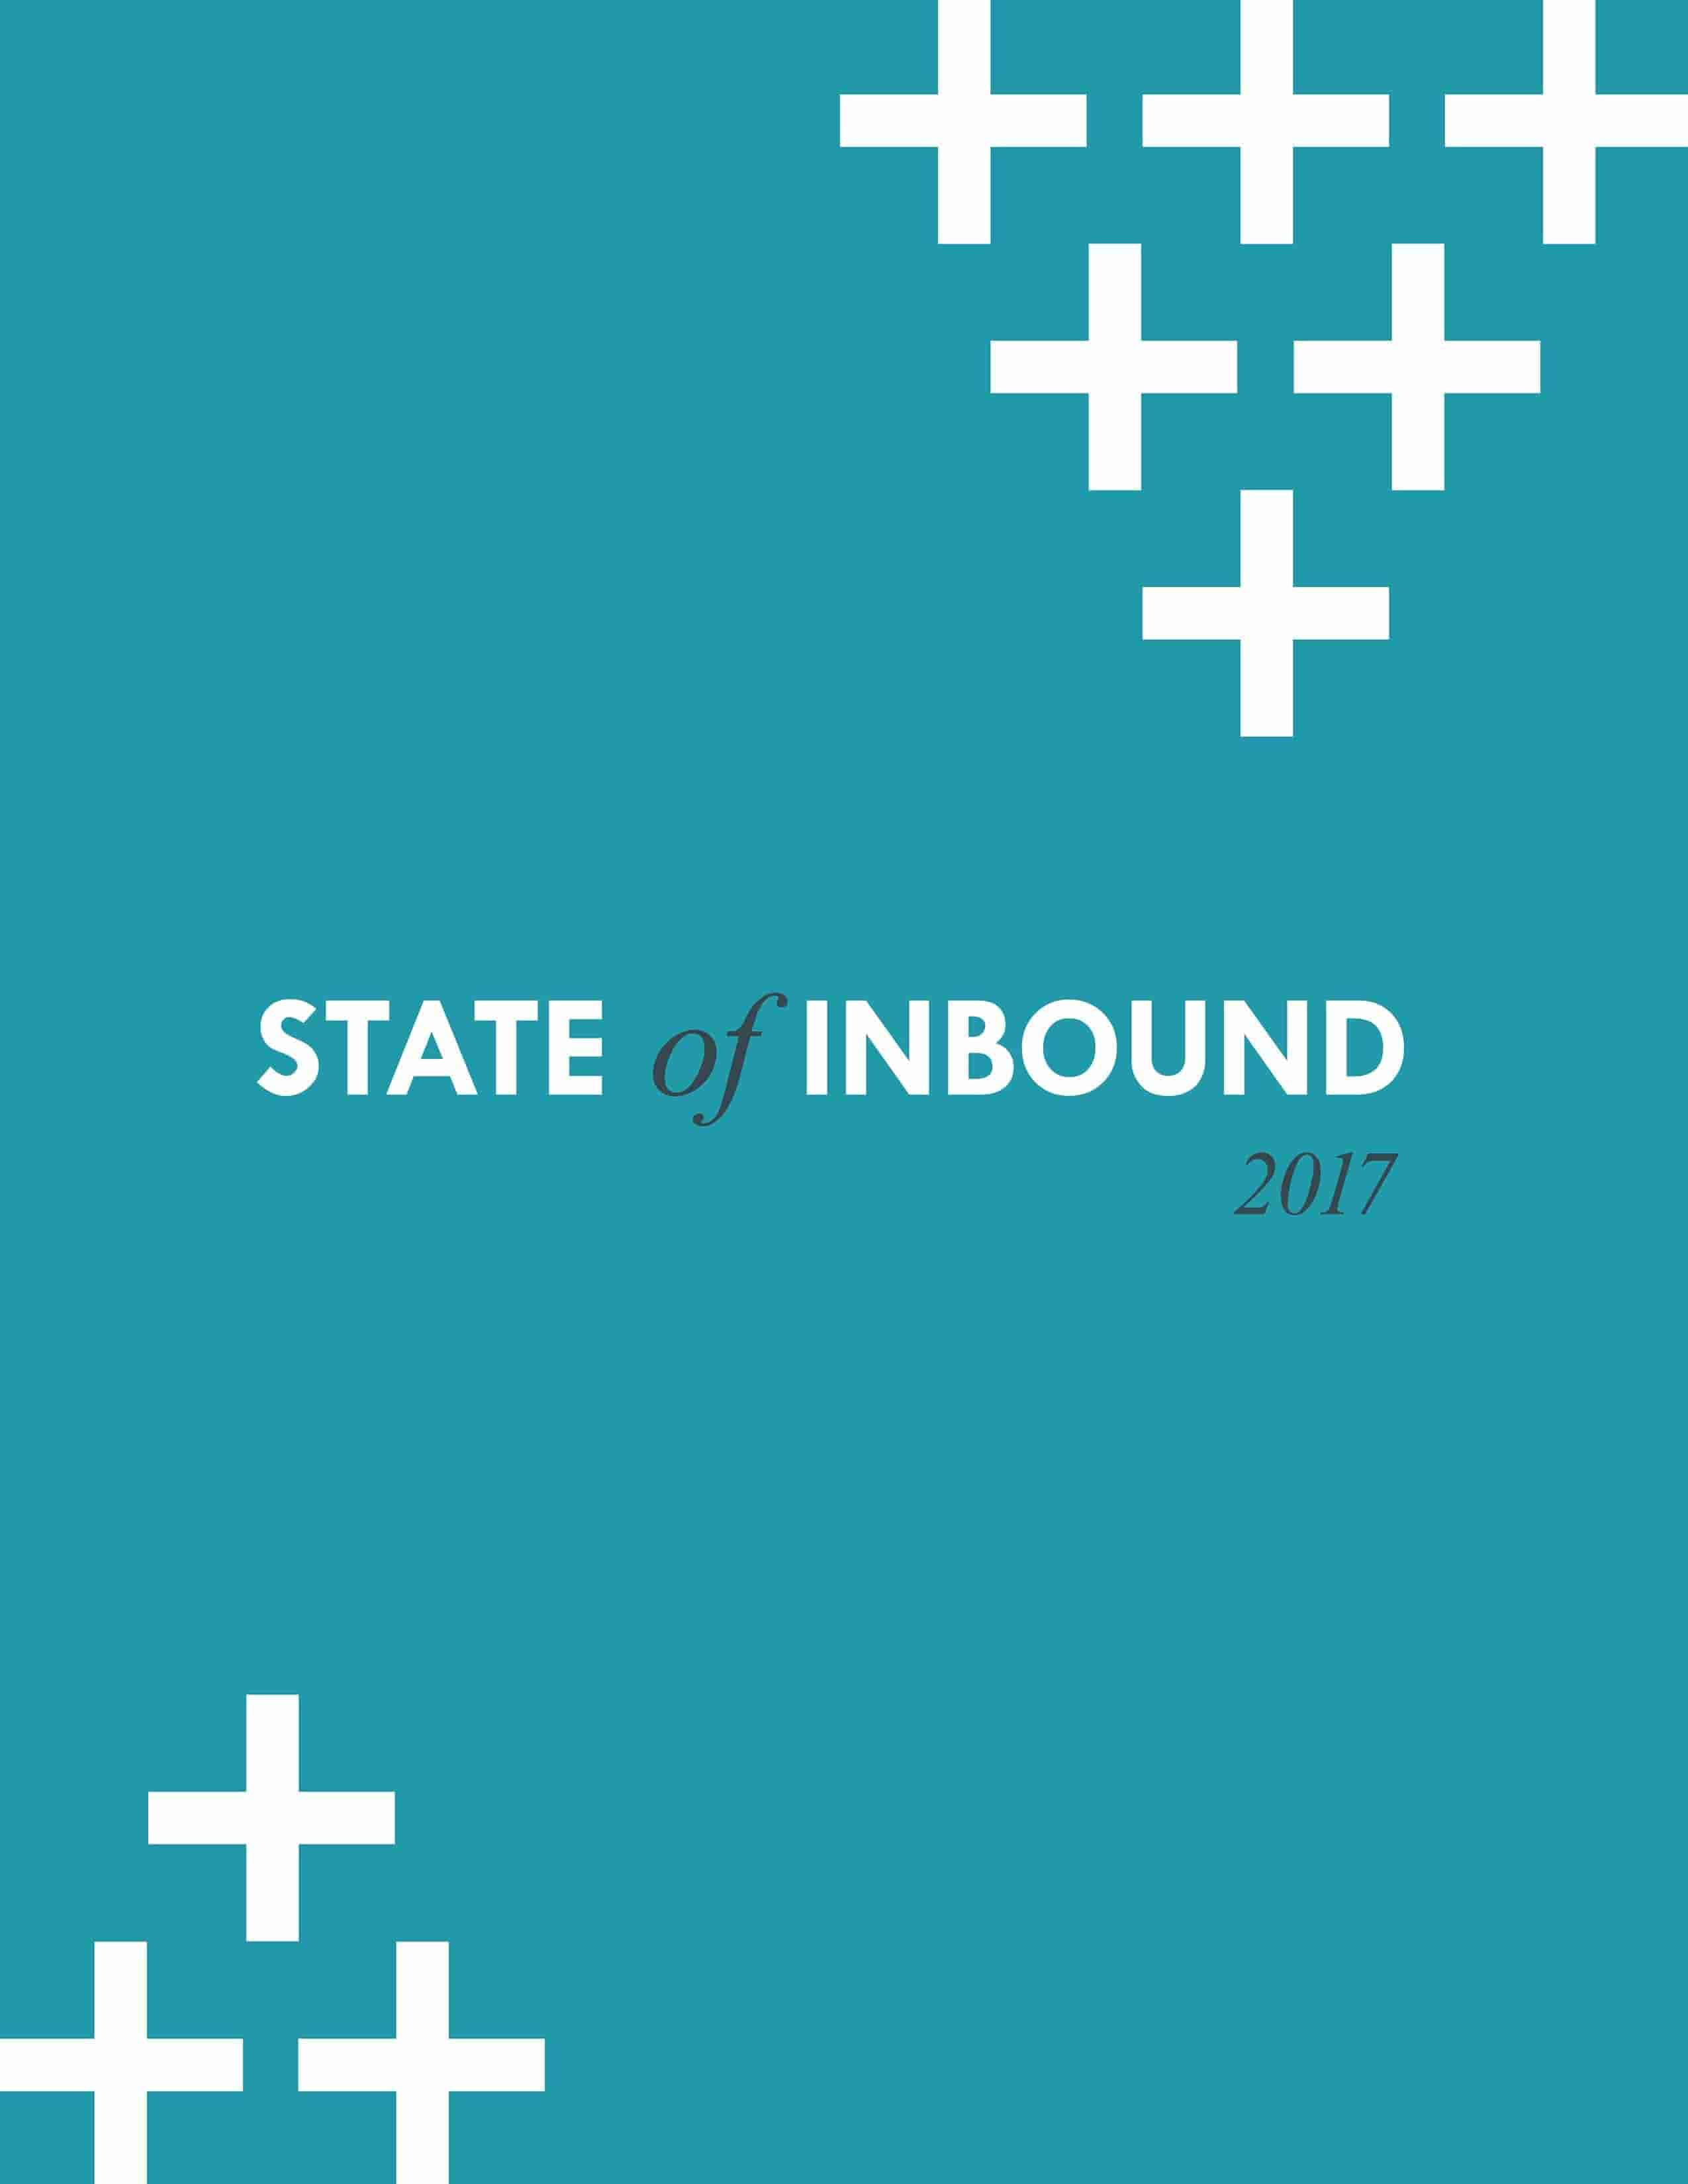 State-of_Inbound-2017-Cover.png